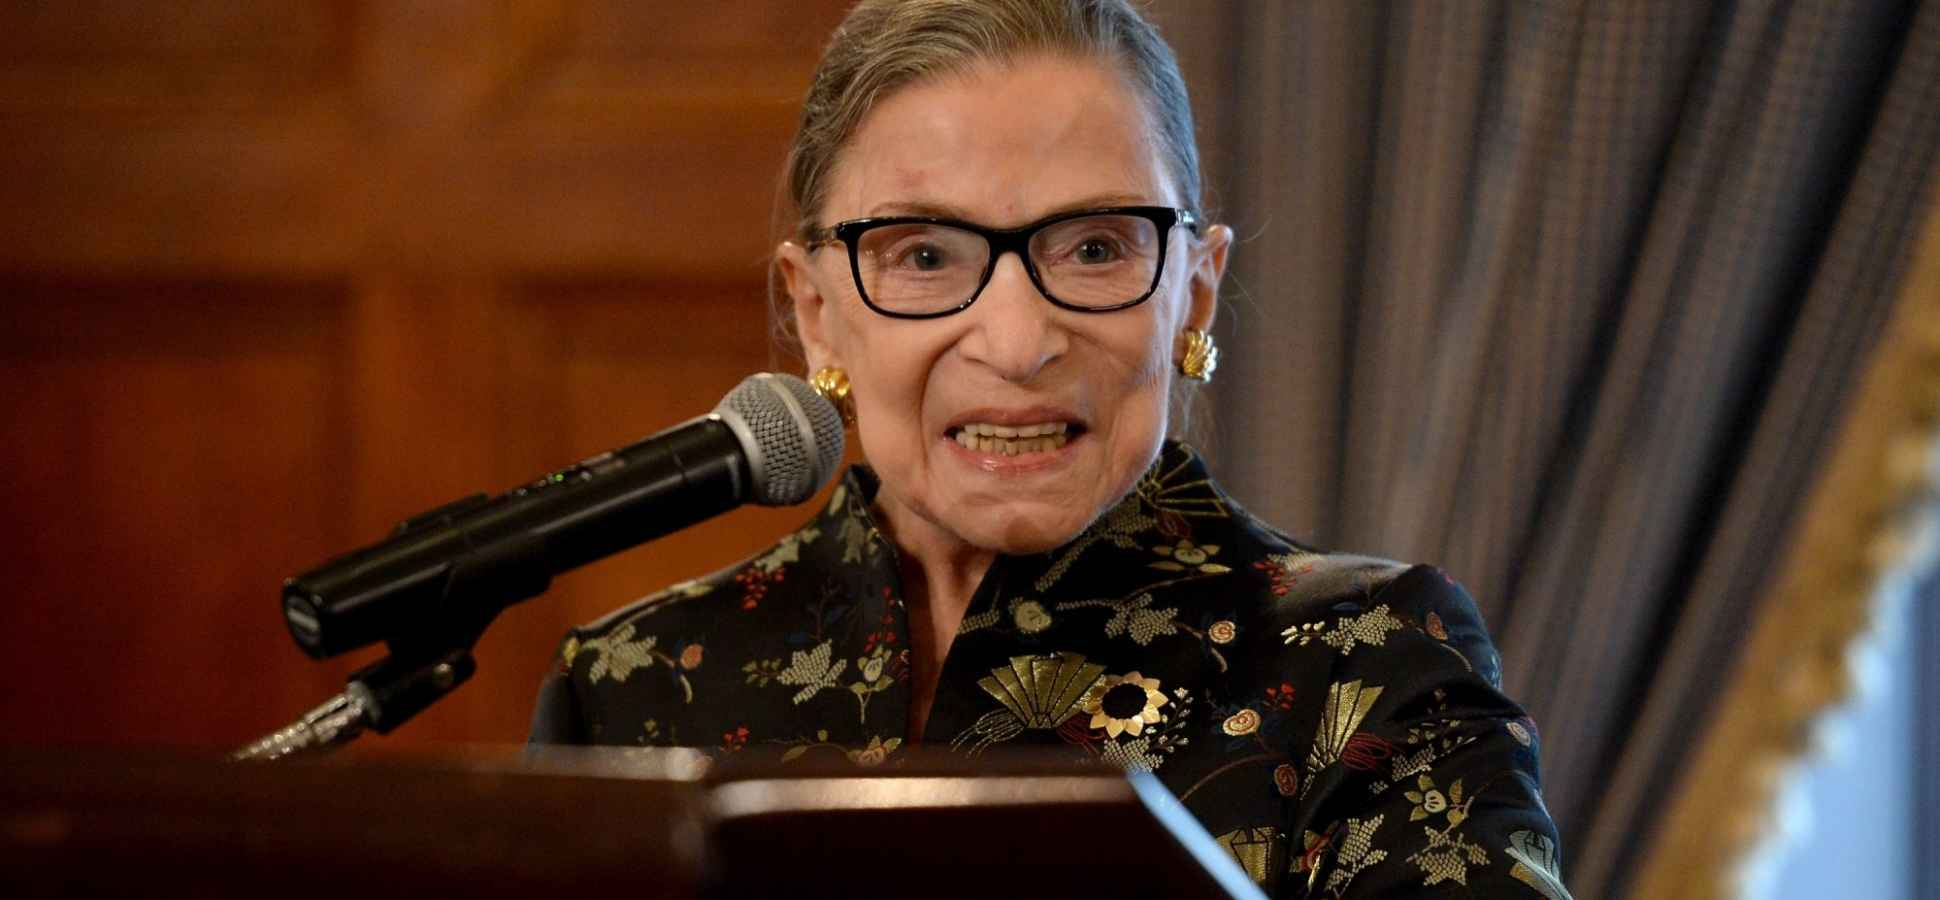 Want to Raise a Trail-Blazing Daughter? Justice Ruth Bader Ginsburg Says Do These 7 Things